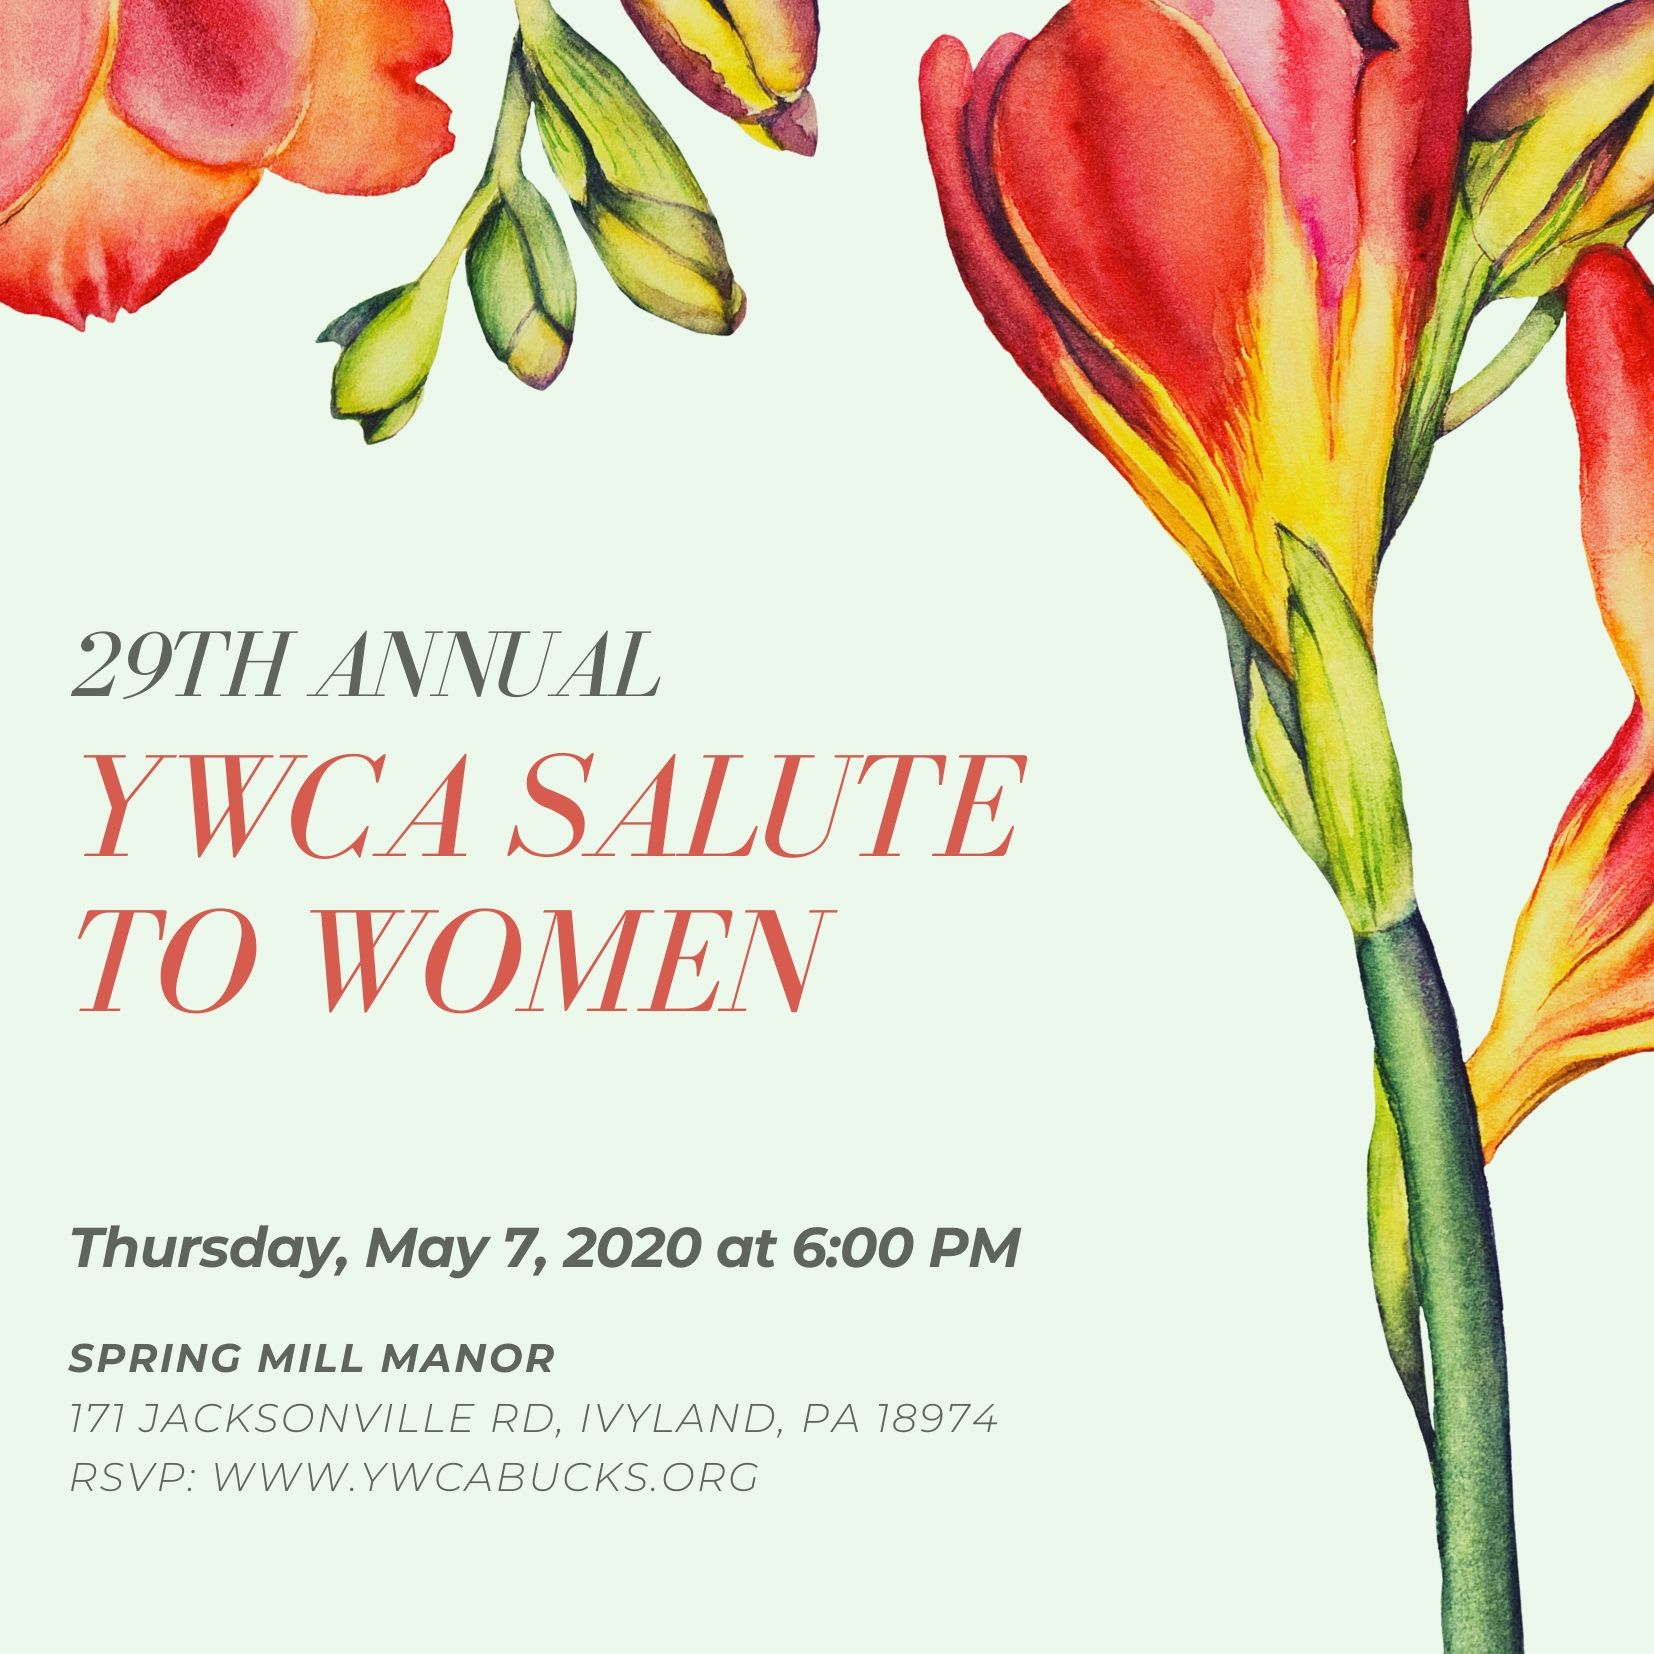 Salute to Women 29th Annual Event @ Spring Mill Manor